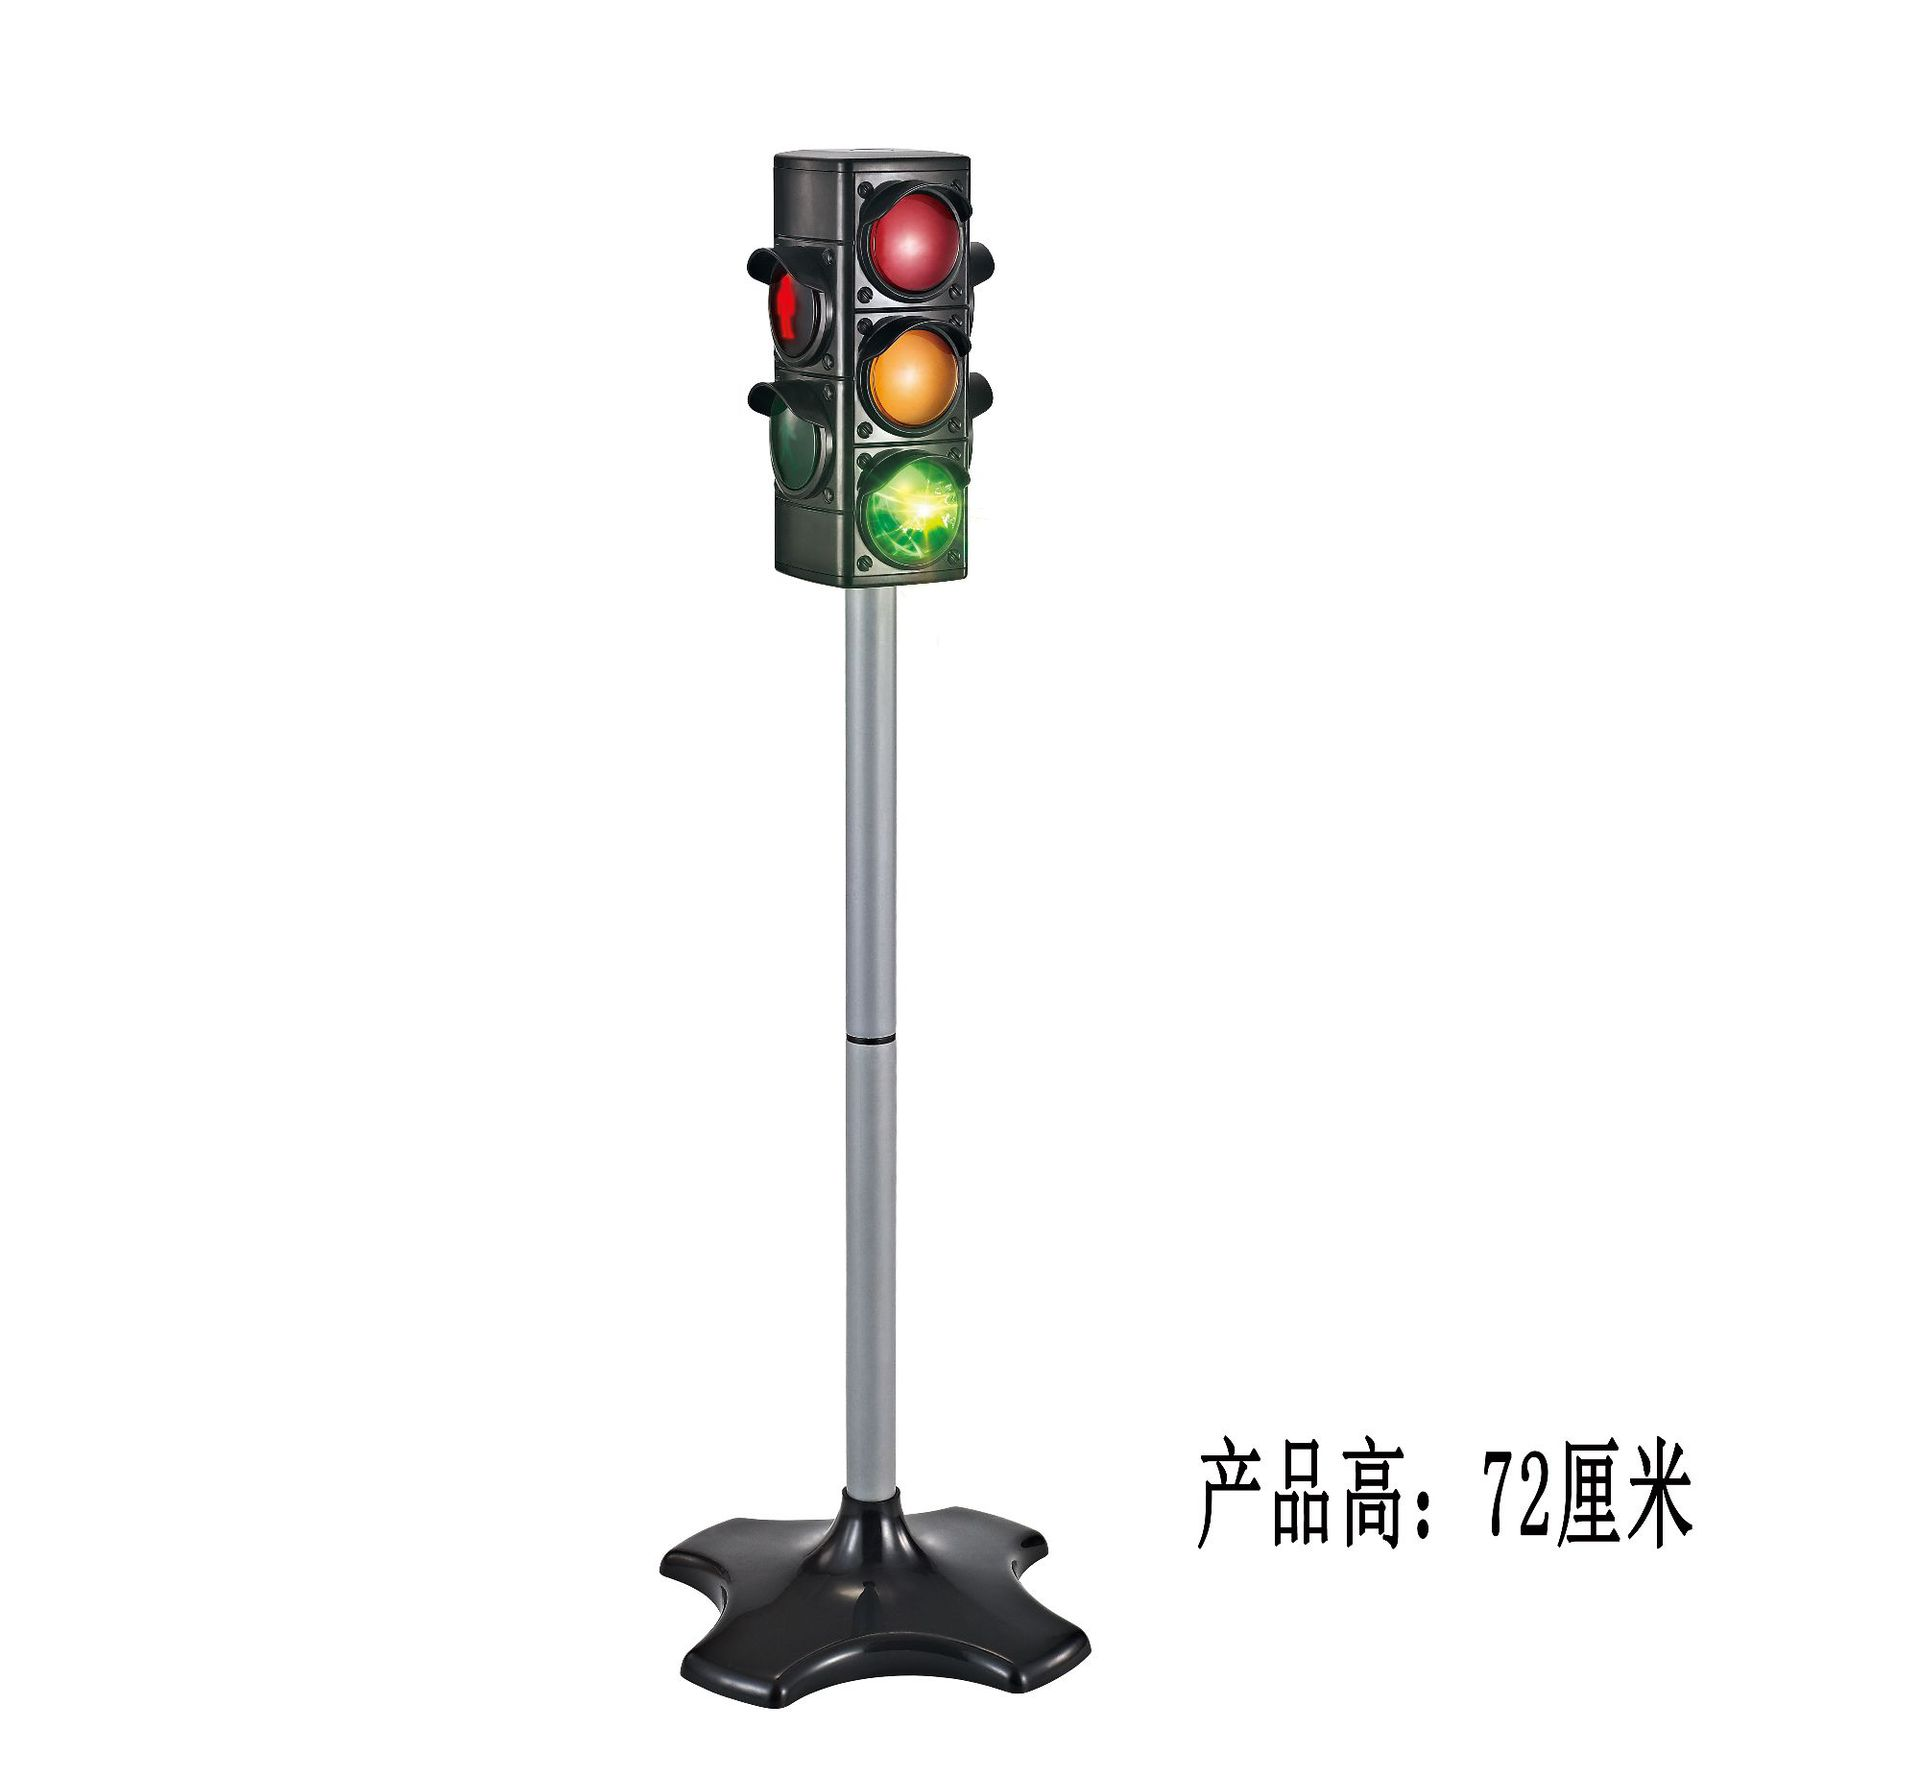 72cm Simulation Working Traffic Light Children's Role Play Communication Early Educational Traffic Diecasts Toys Vehicles Doll